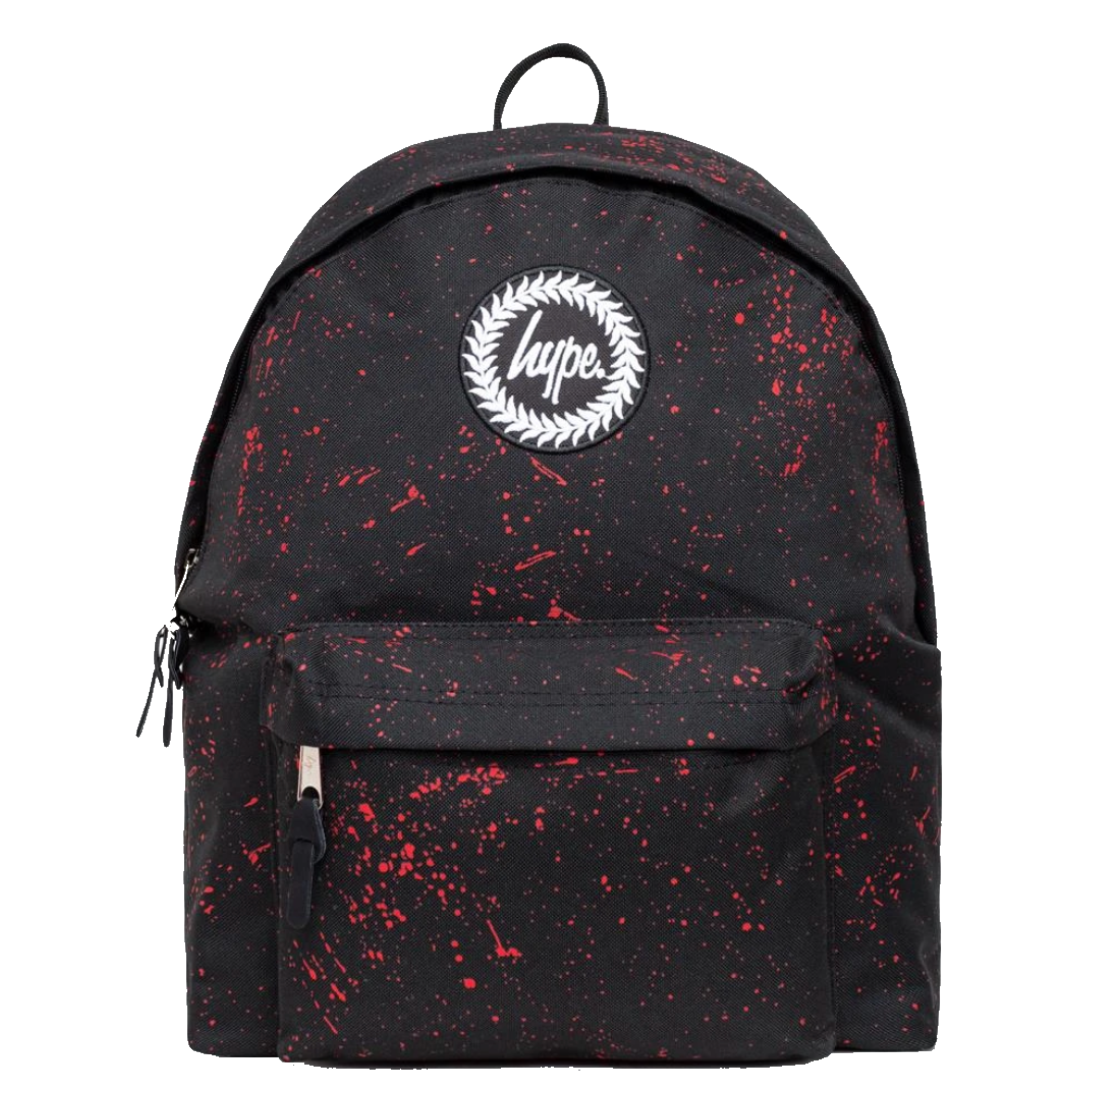 Hype - Black / Red Speckle Backpack